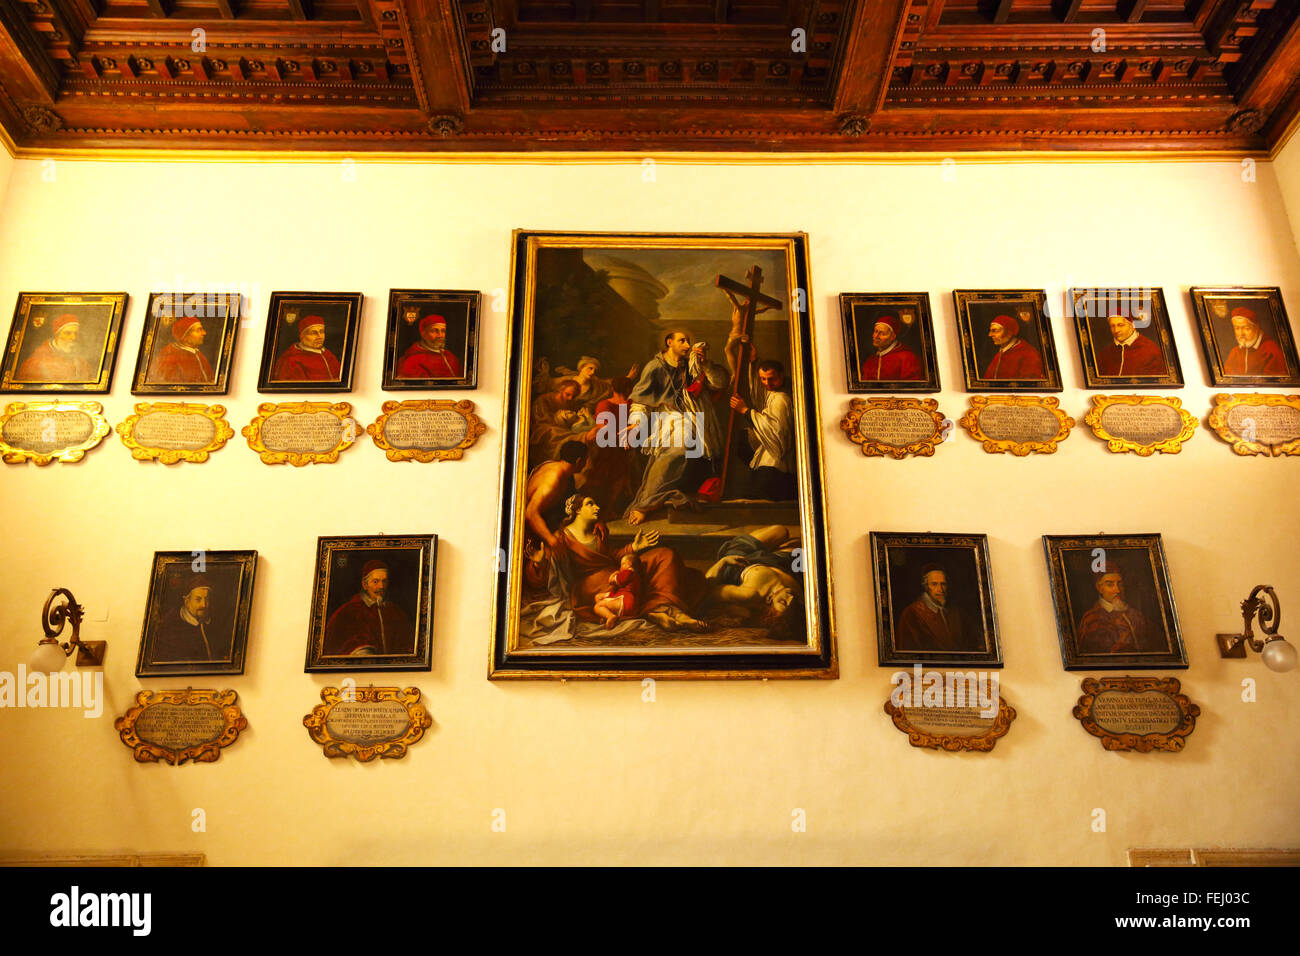 Portraits of various popes displayed in Basilica Santa Maria Maggiore in Rome. - Stock Image